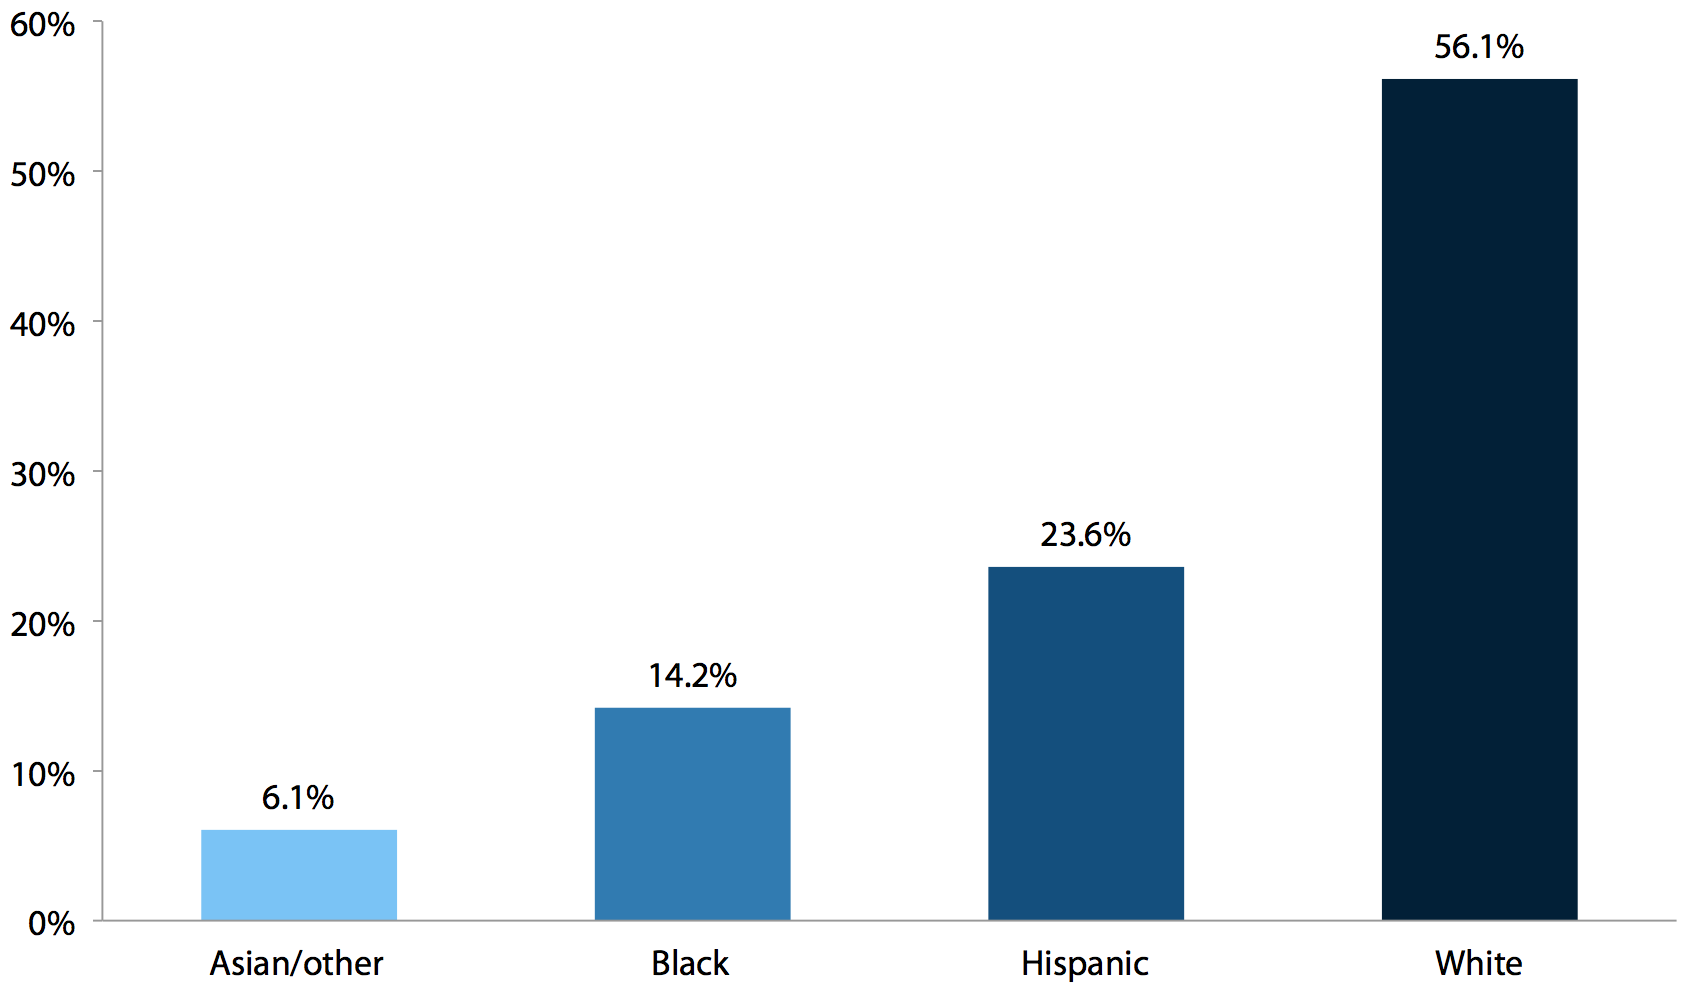 Race/ethnicity of workers affected by increasing the federal minimum wage to $9.80 (by July 1, 2014)